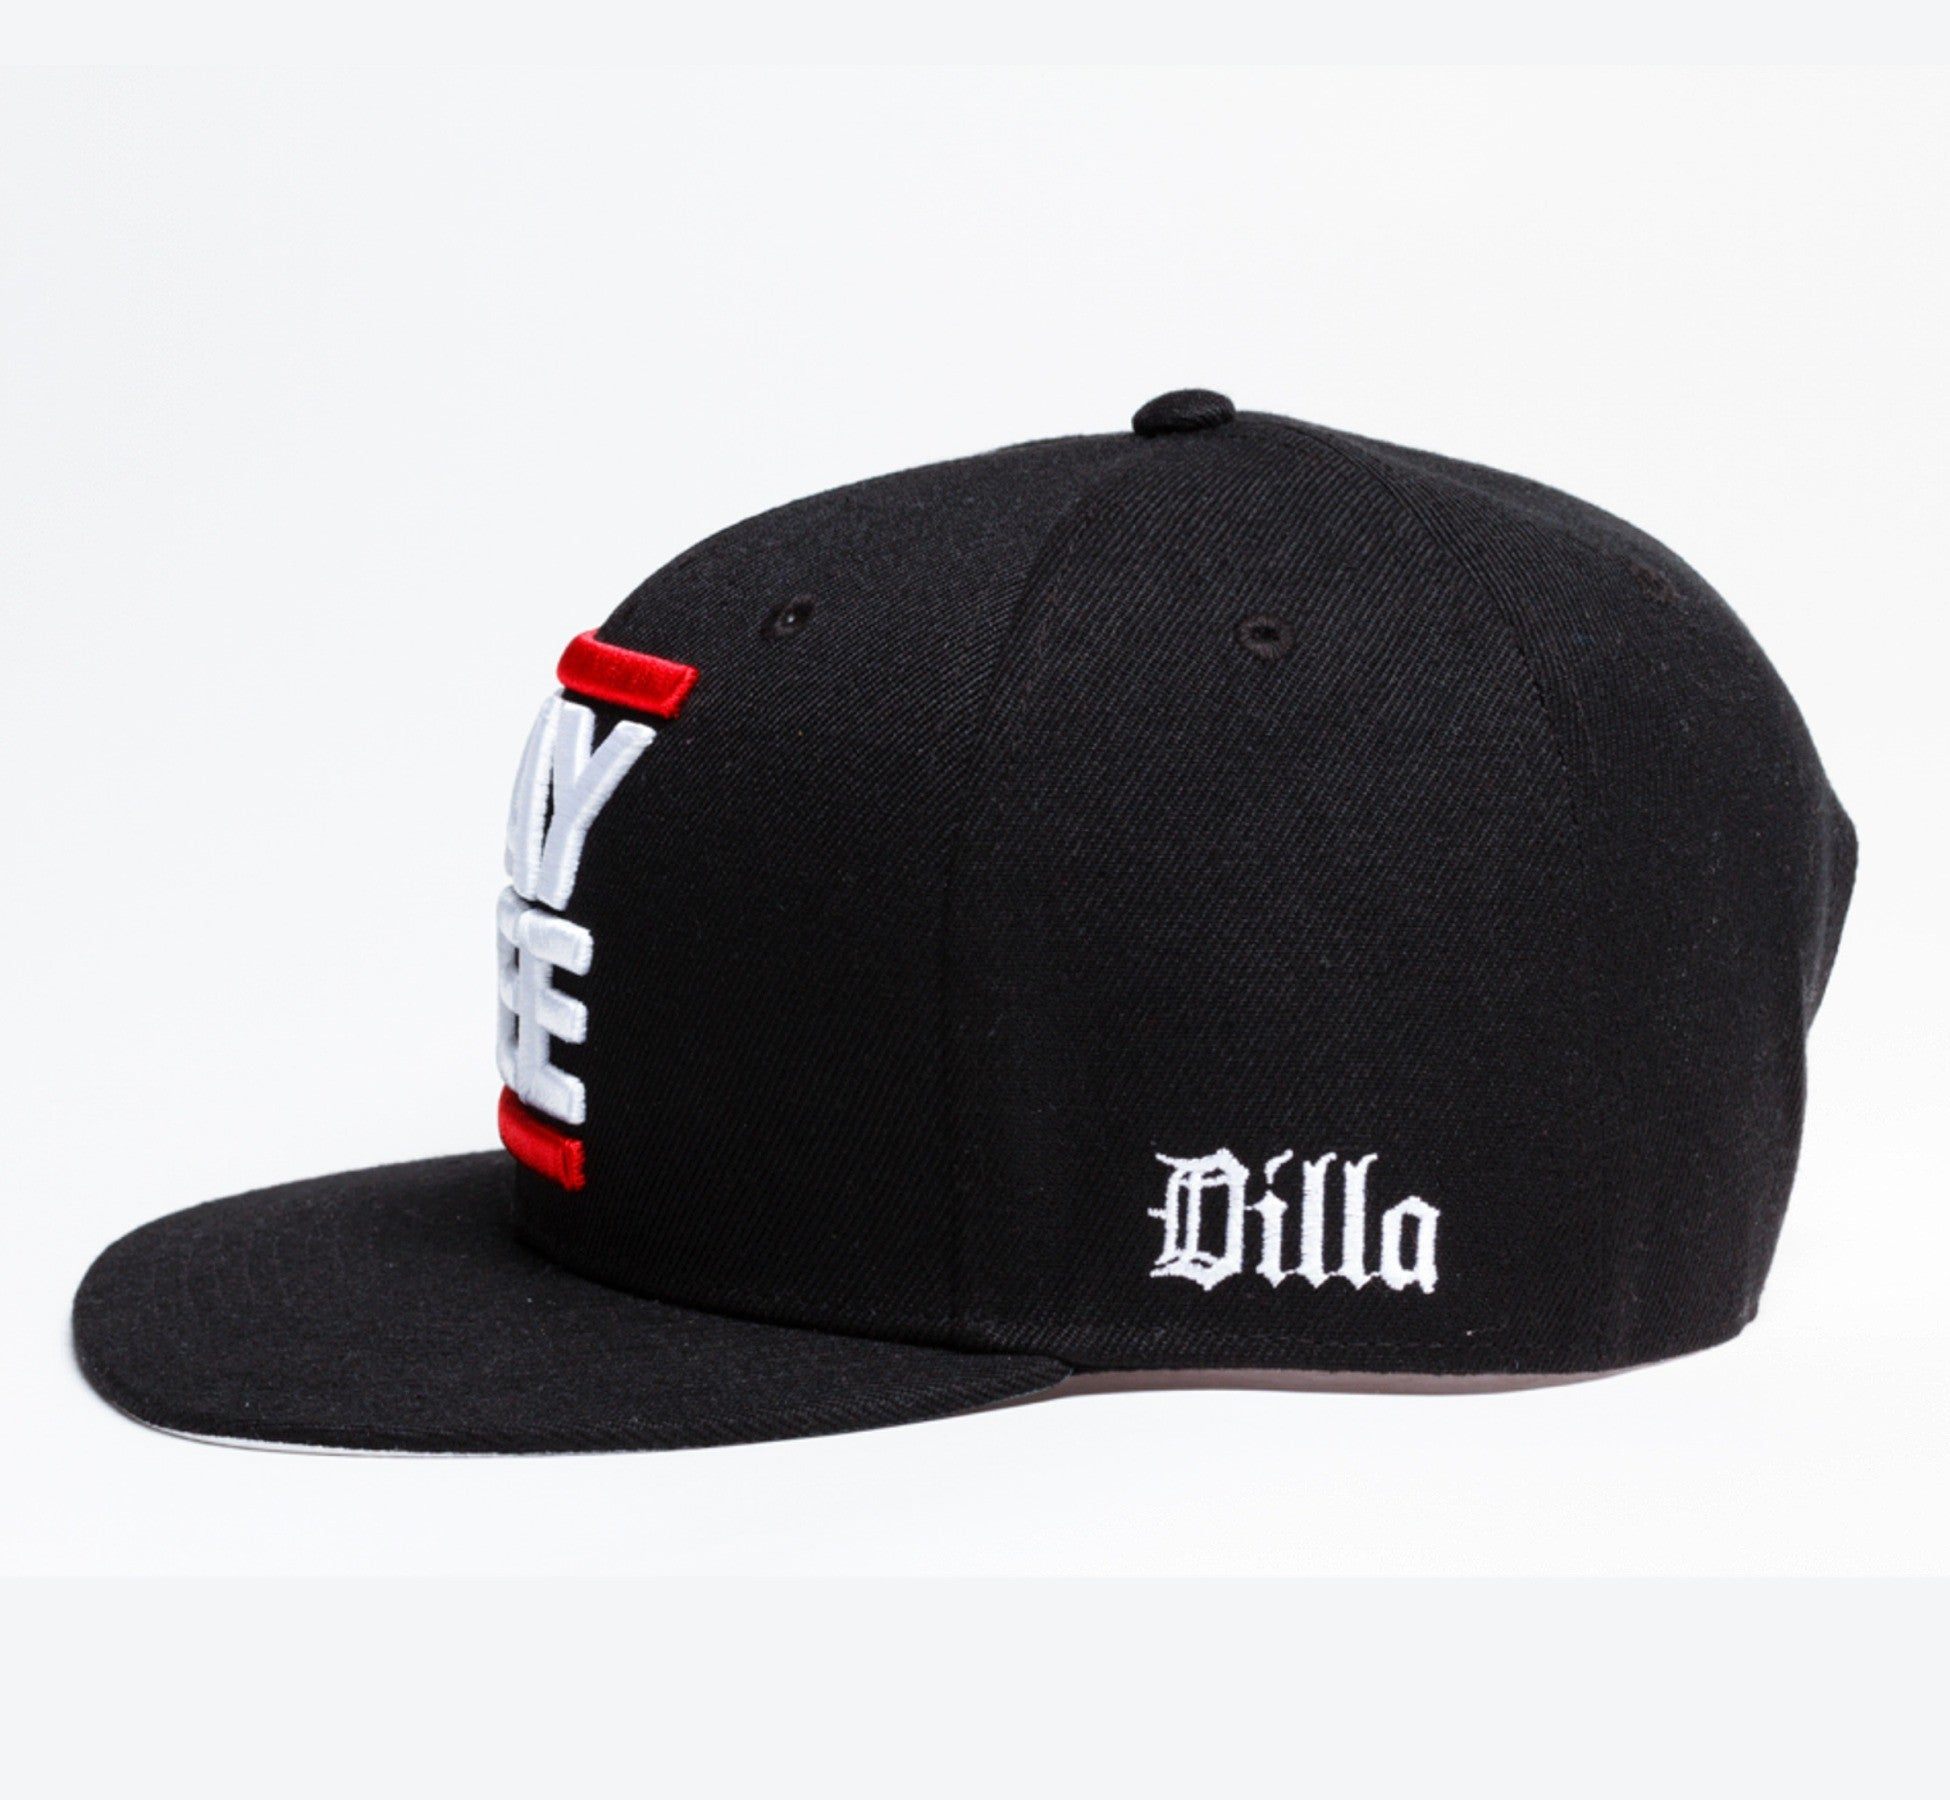 J Dilla - Jay Dee Snapback, Black - The Giant Peach - 3